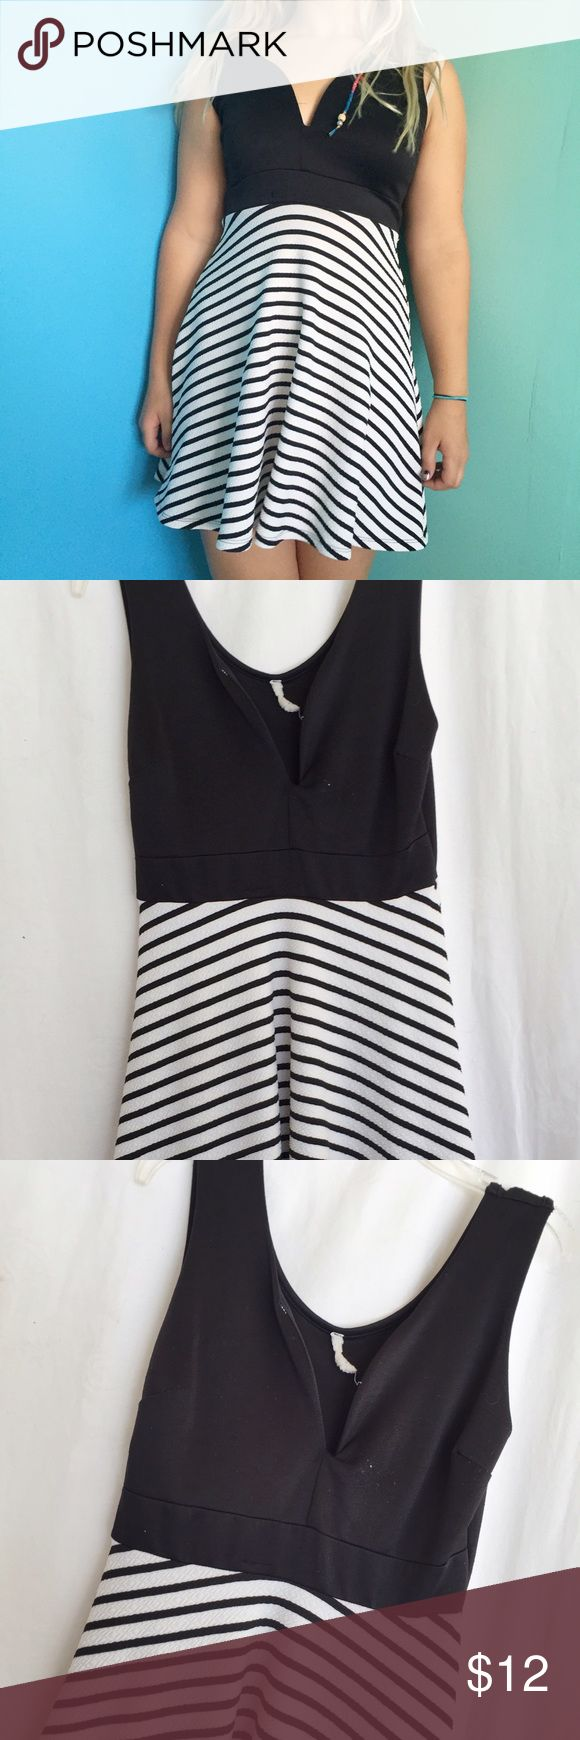 gorgeous striped low neck dress have a fancy occasion coming up? or need a date night dress? this gorgeous piece is in great condition and is very flattering. Dresses Midi